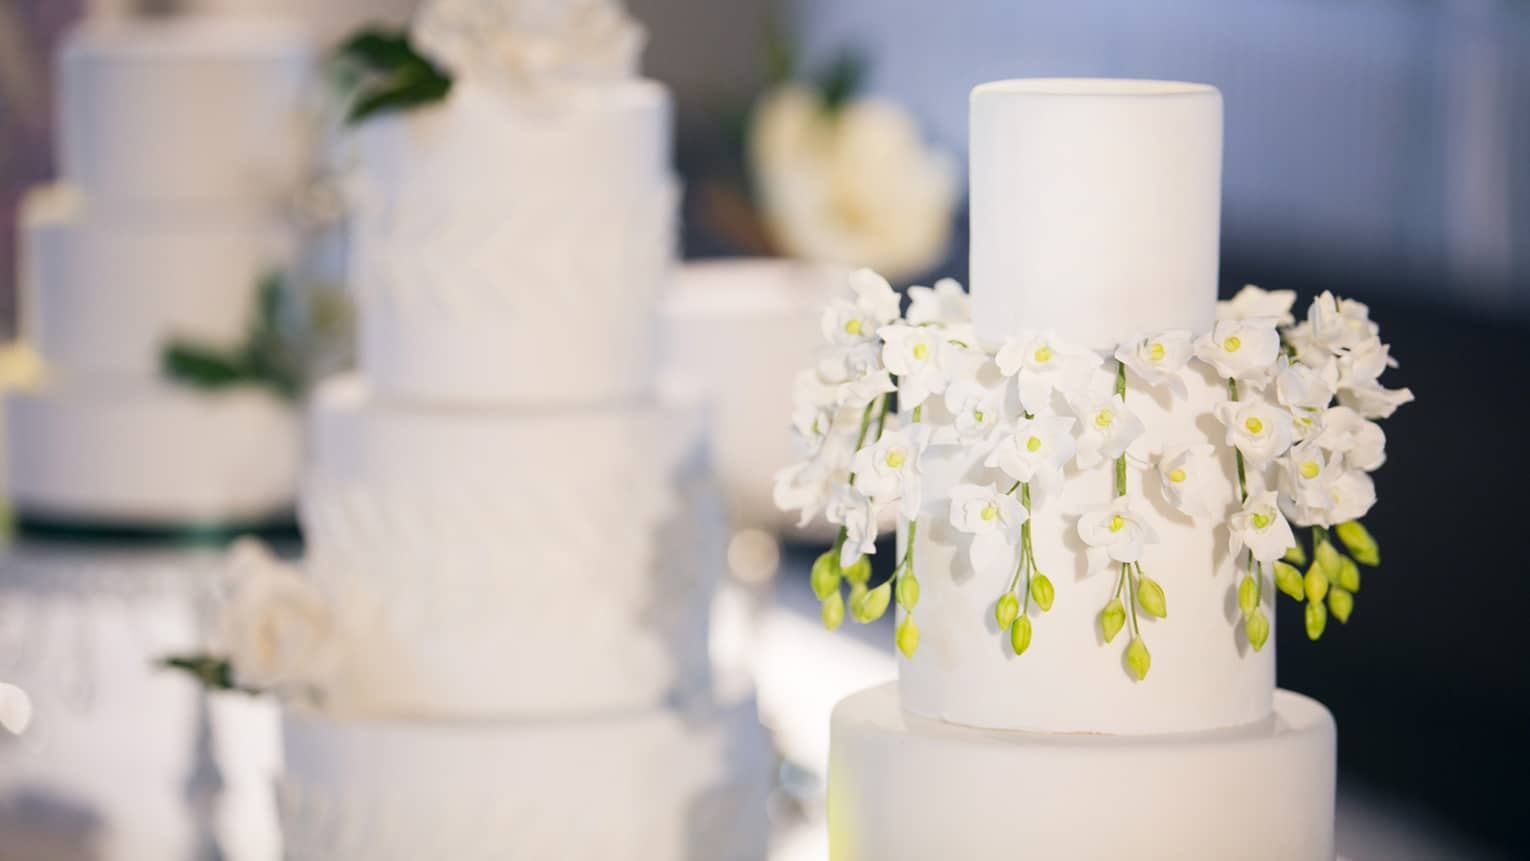 Three-tiered wedding cakes are each garnished with white florals